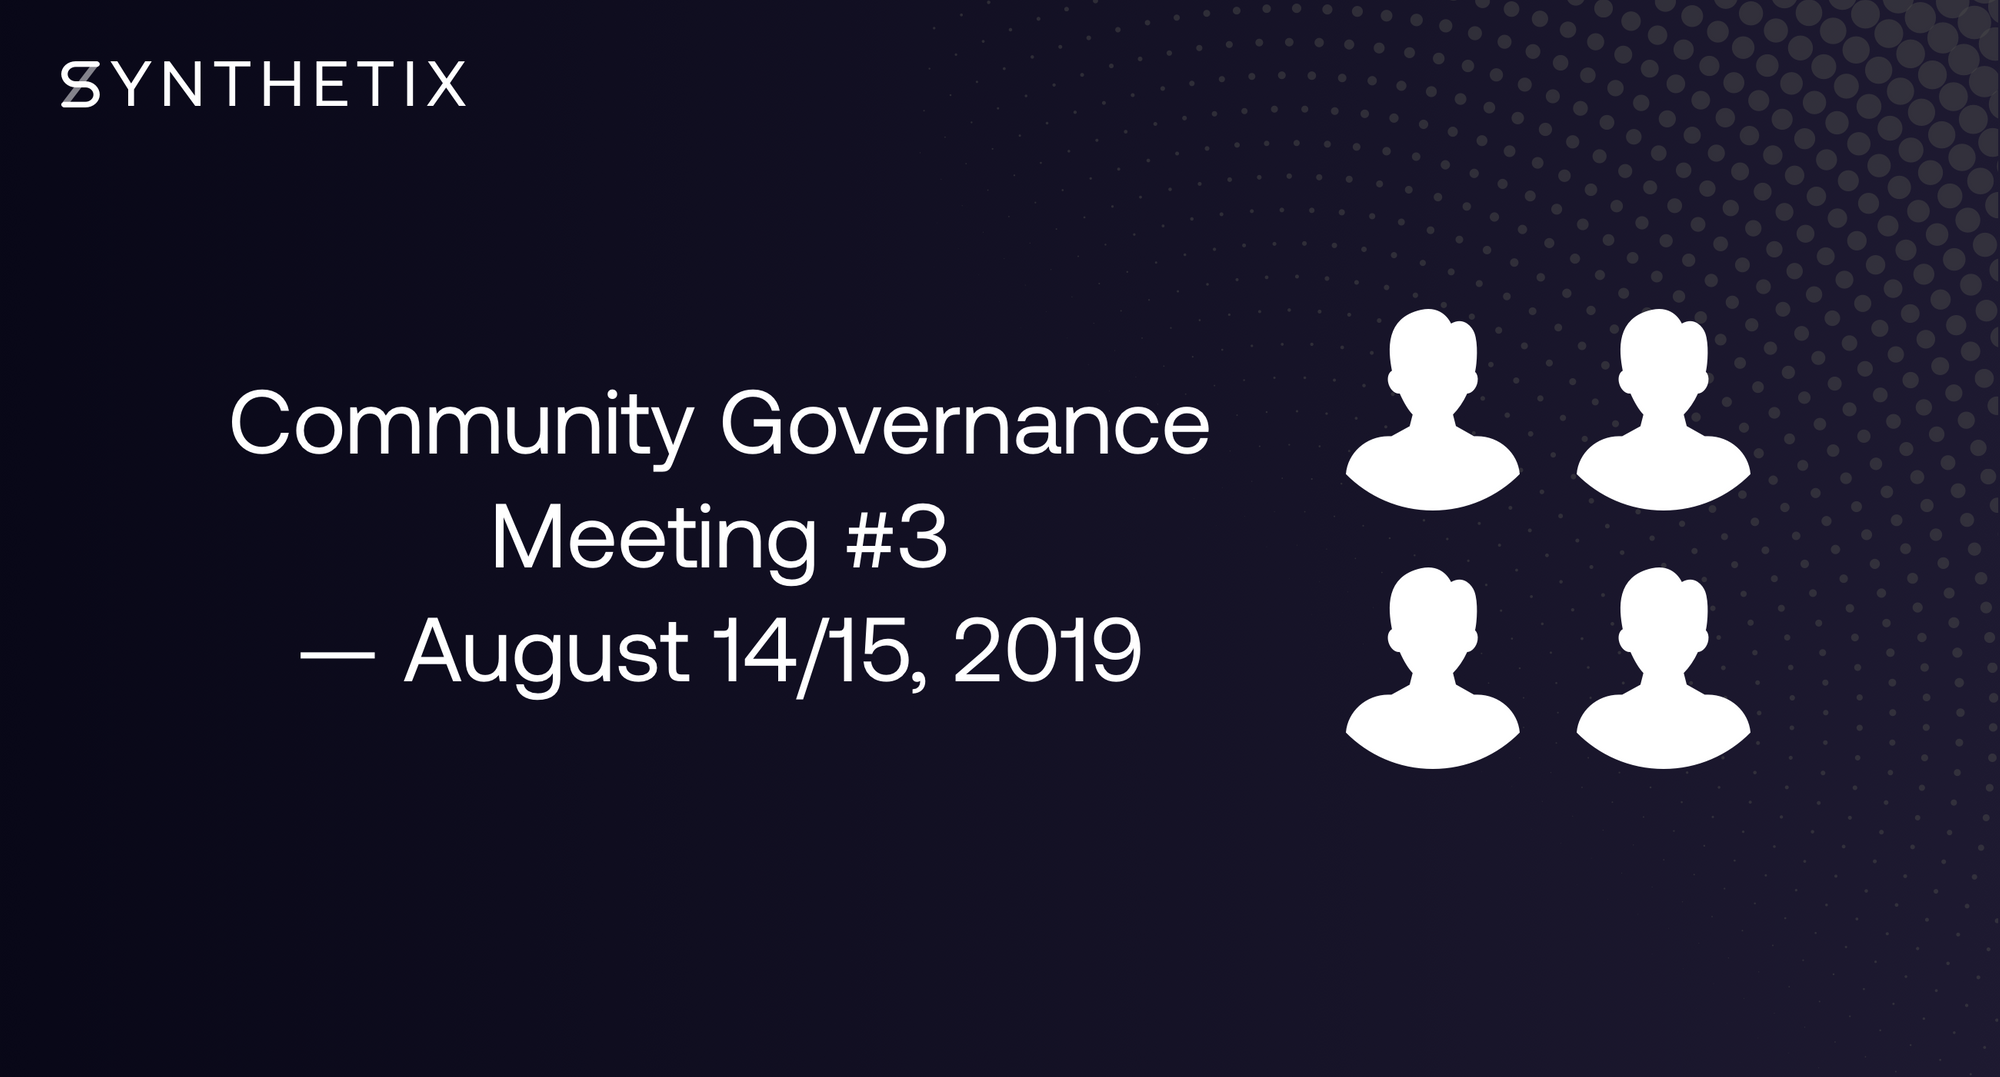 Come join the next community governance call on August 14/15!